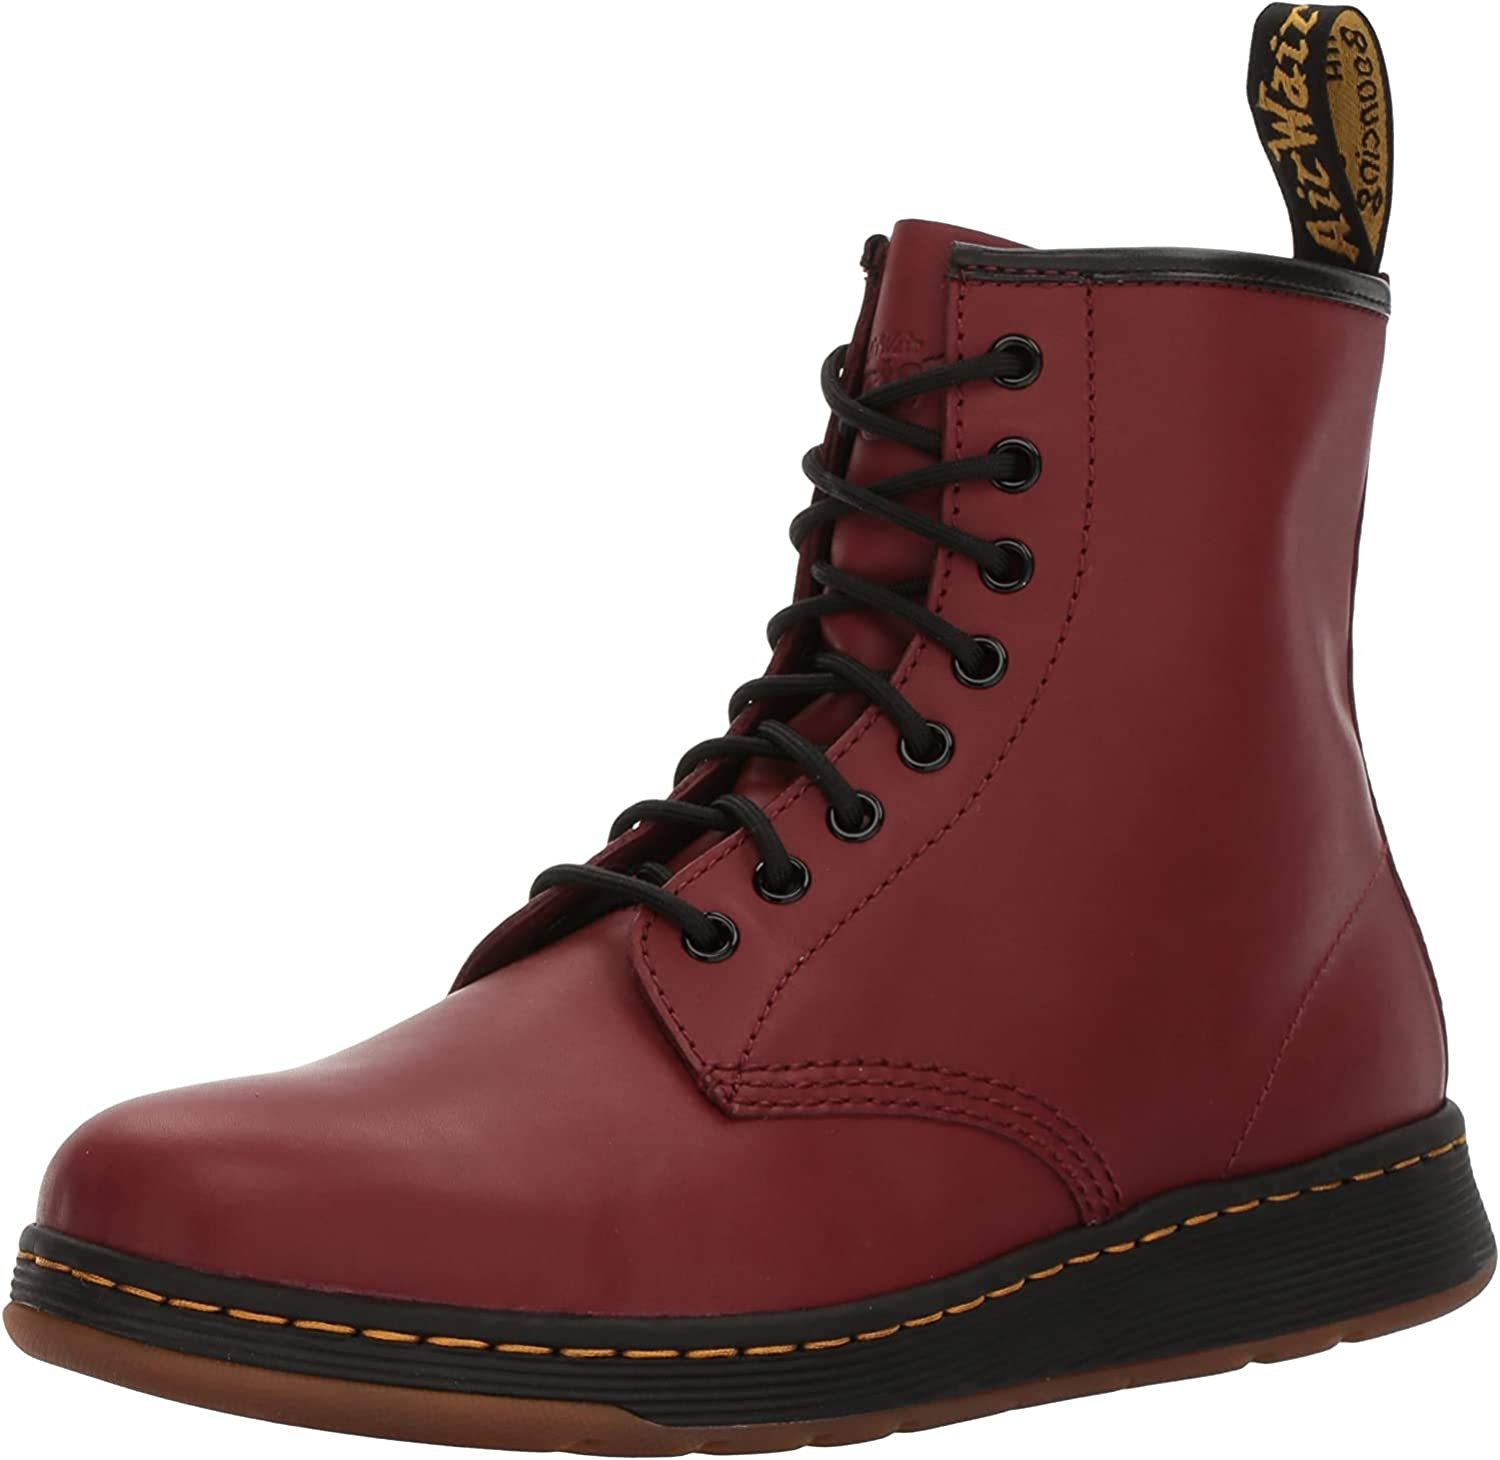 Dr. Martens Max 83% OFF Unisex Boot Newton Directly managed store